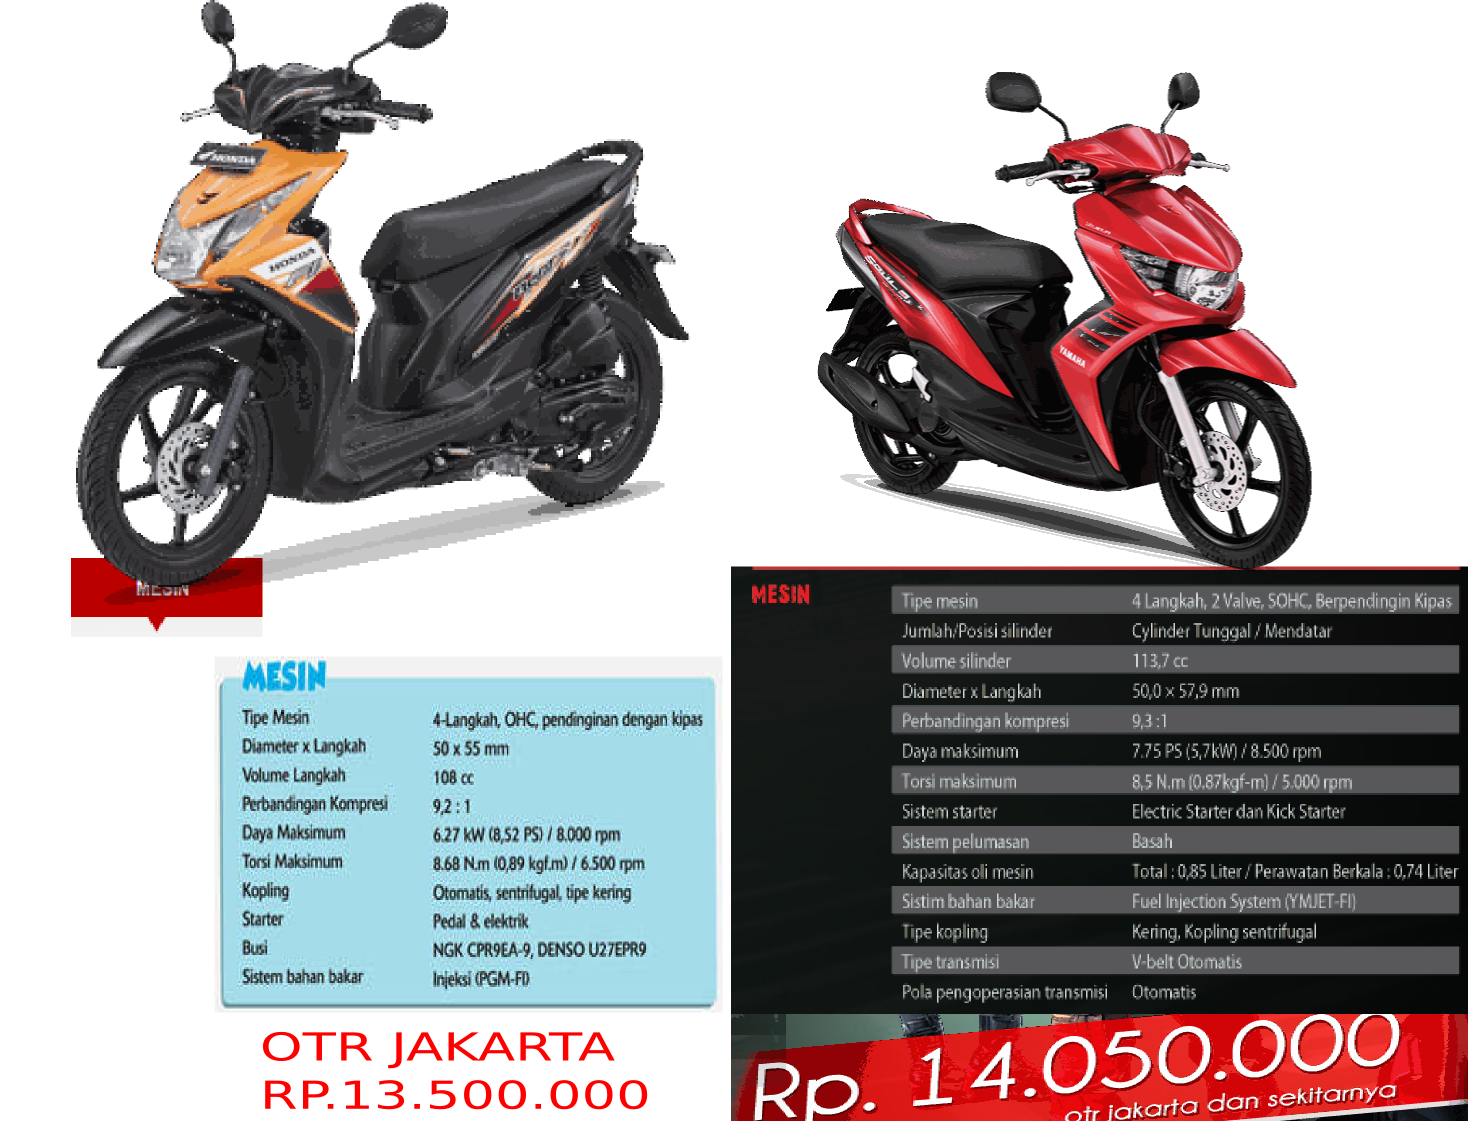 Yamaha Mio Soul Gt Streetfighter Custom Specifications Review